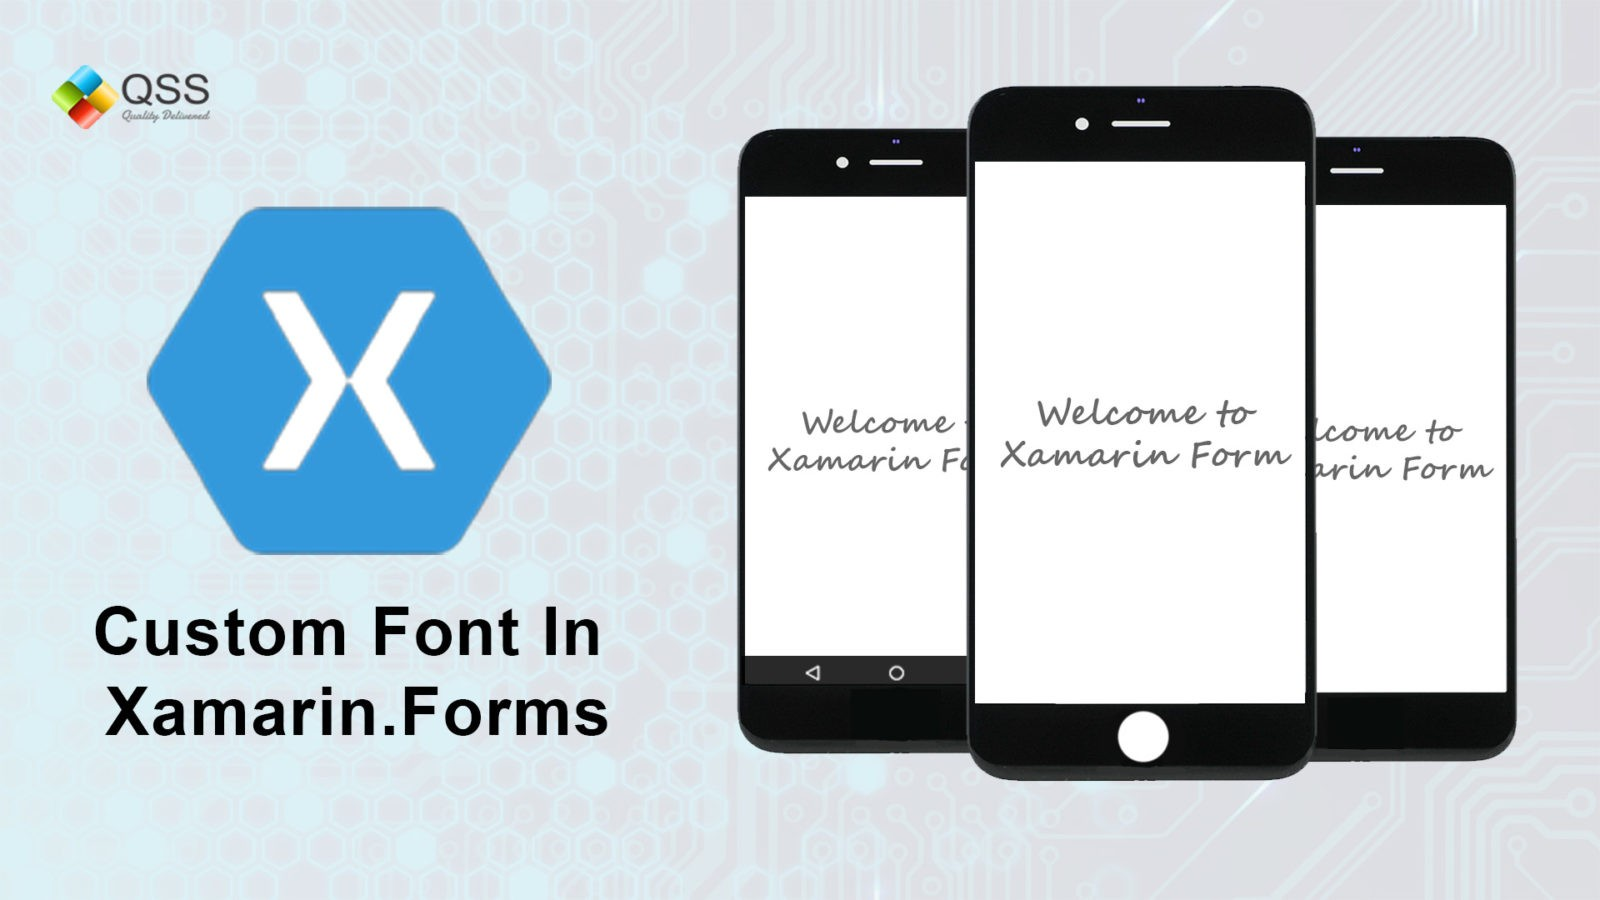 How to add custom fonts in Xamarin forms?